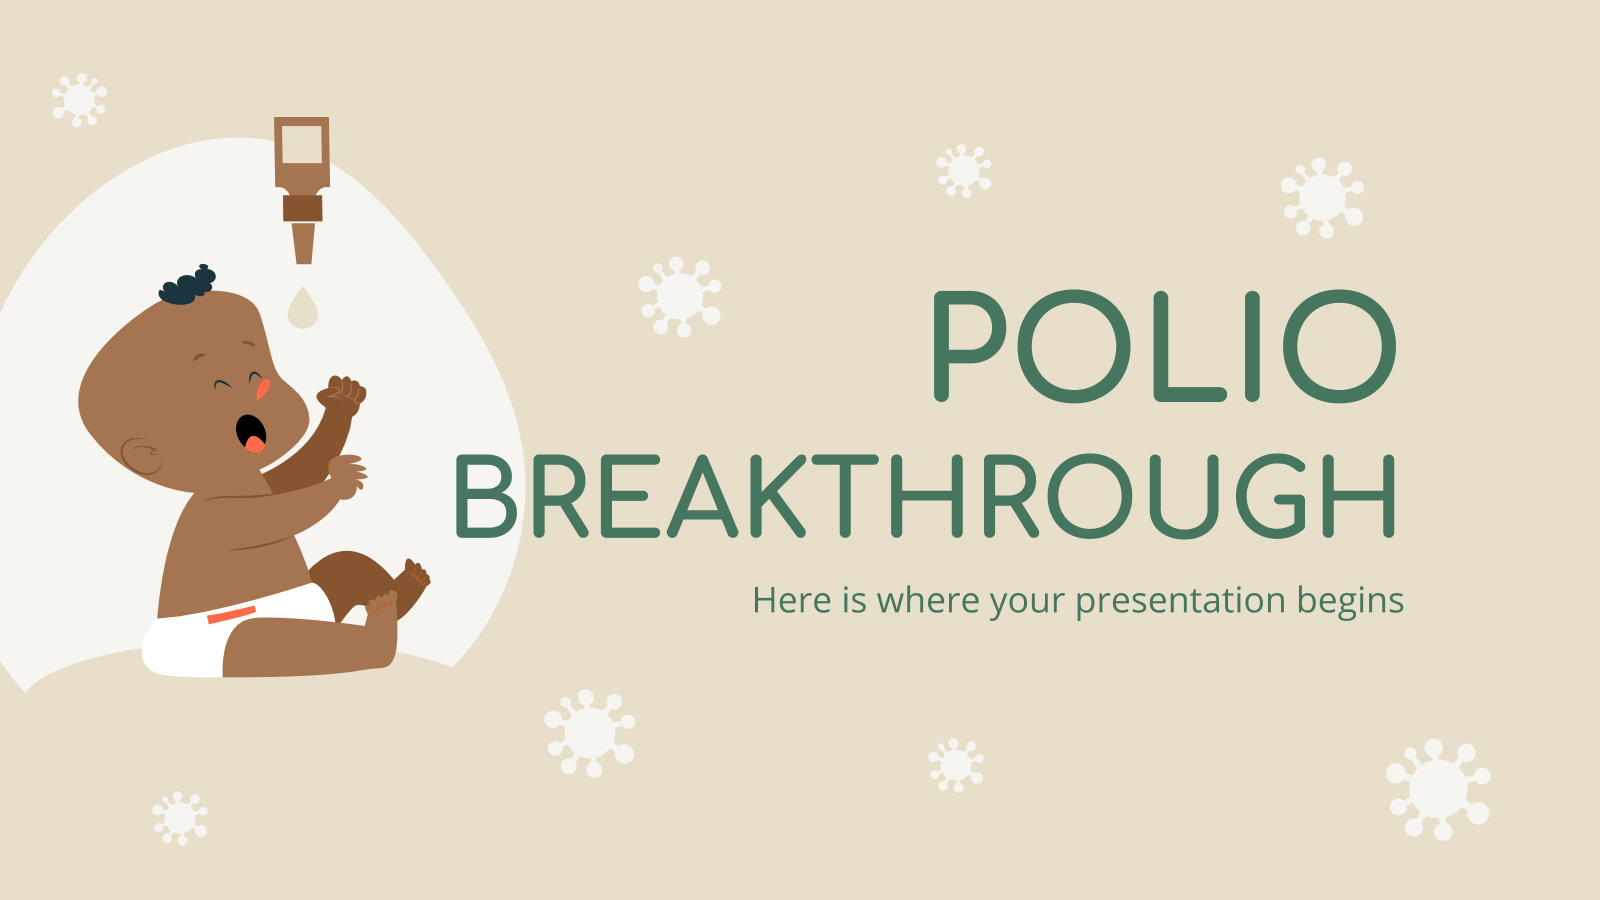 Polio breakthrough presentation template